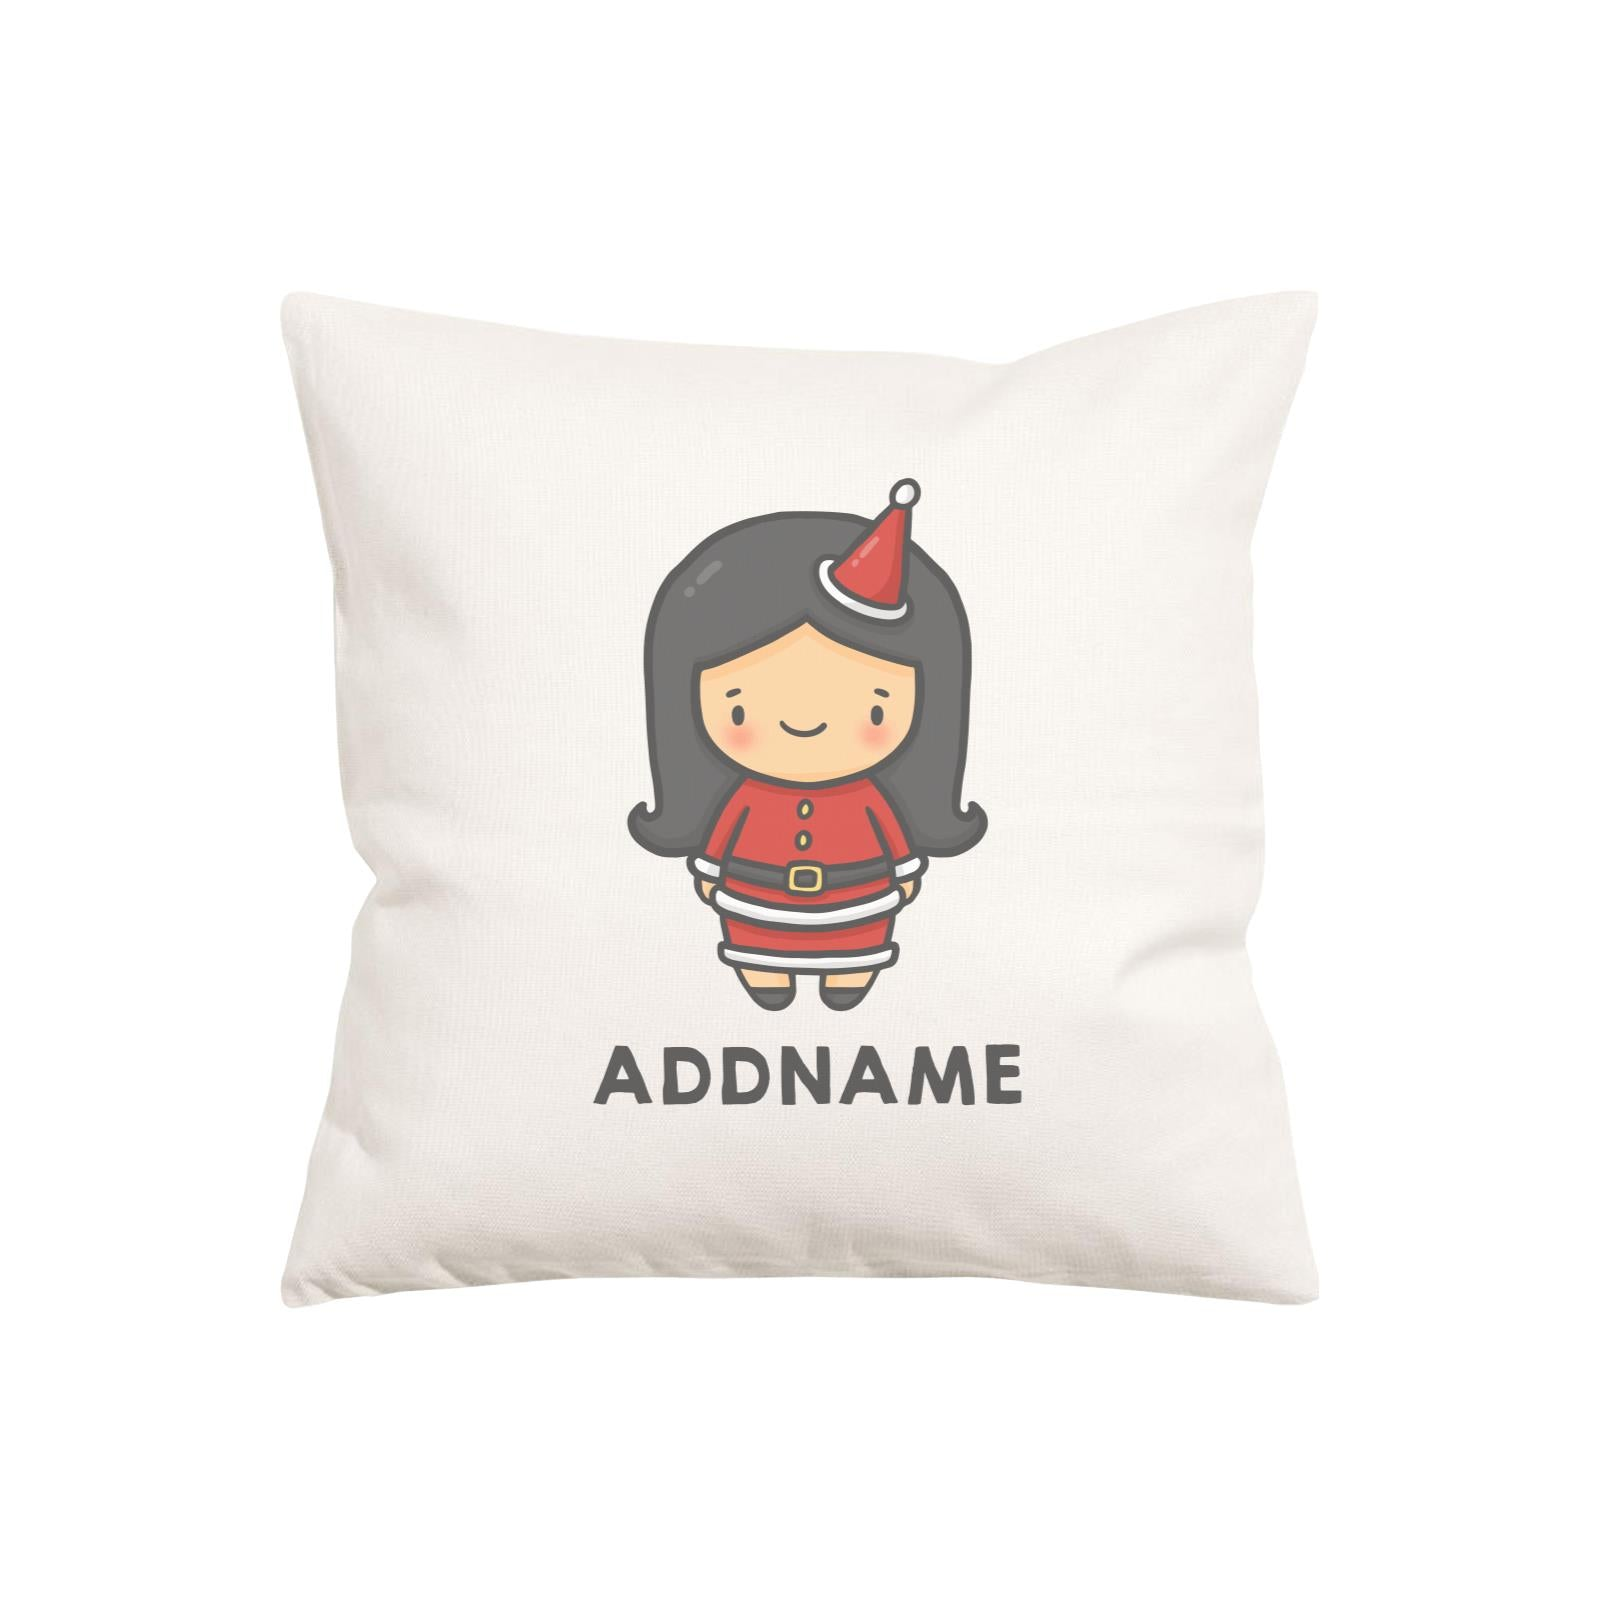 Xmas Cute Girl Addname Pillow Cushion